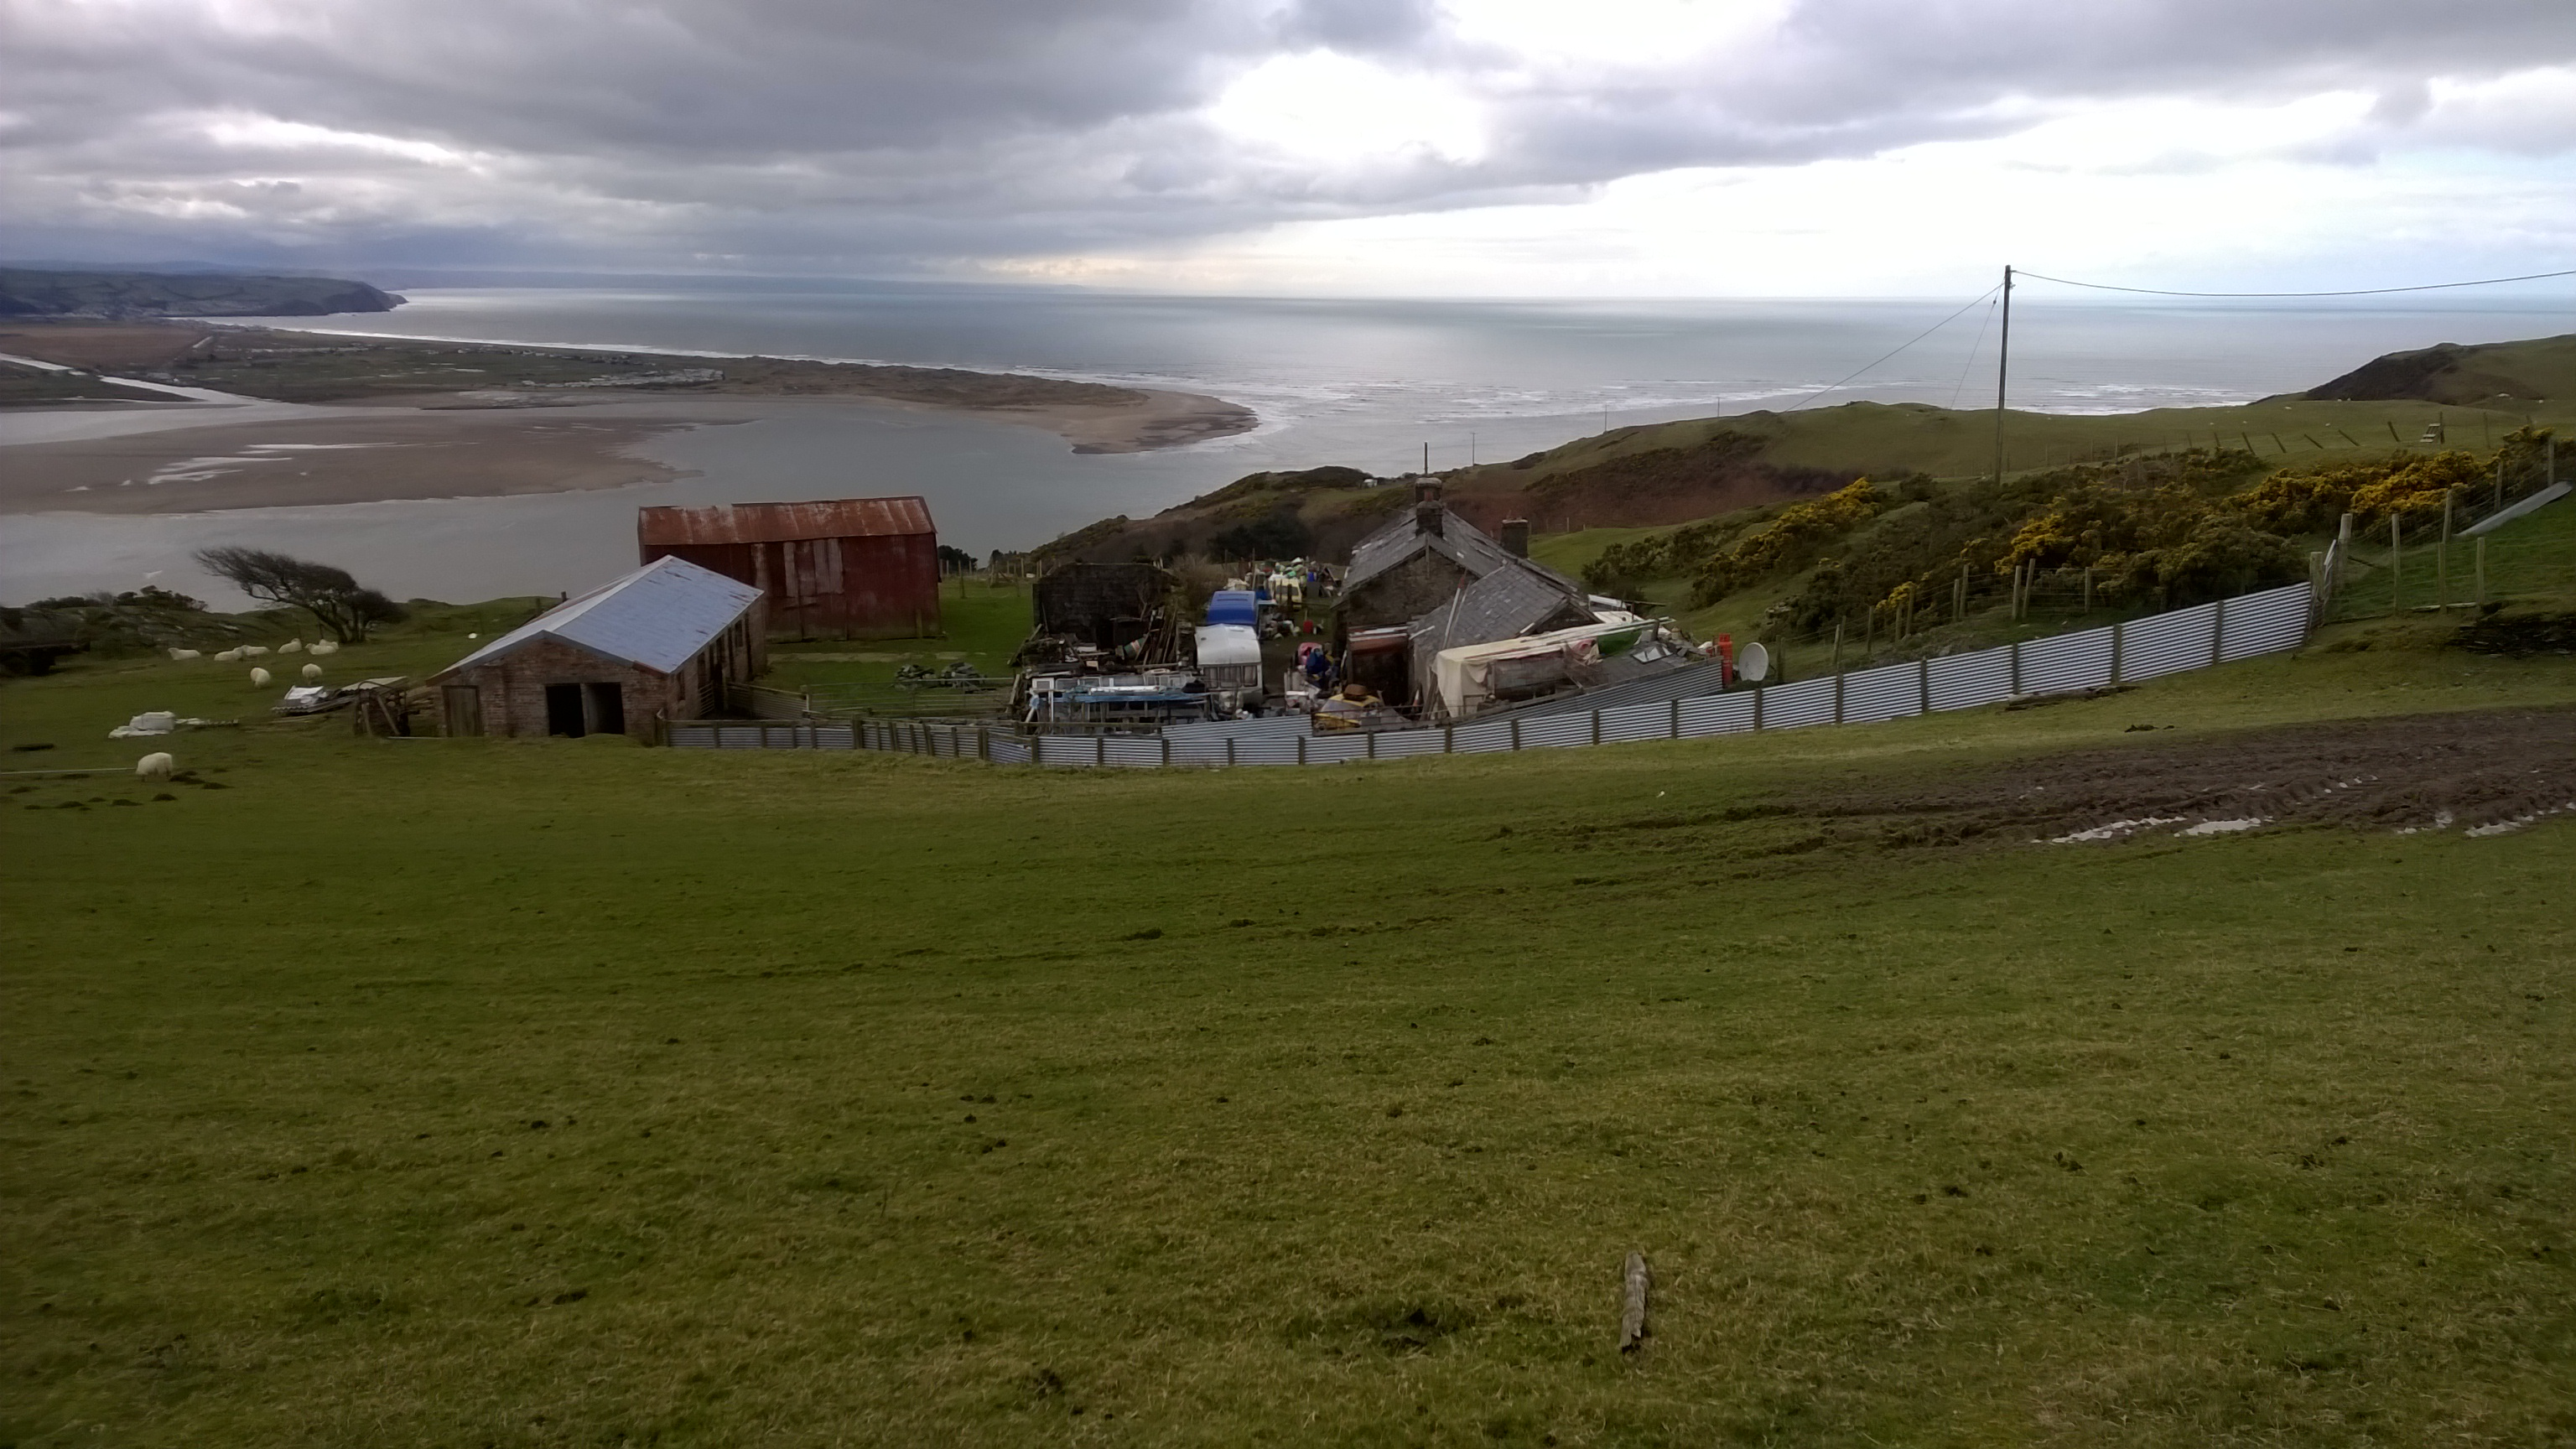 Development Potential, 59 Acres Coastal Farm, Investment Opportunity | Penhelig Uchaf